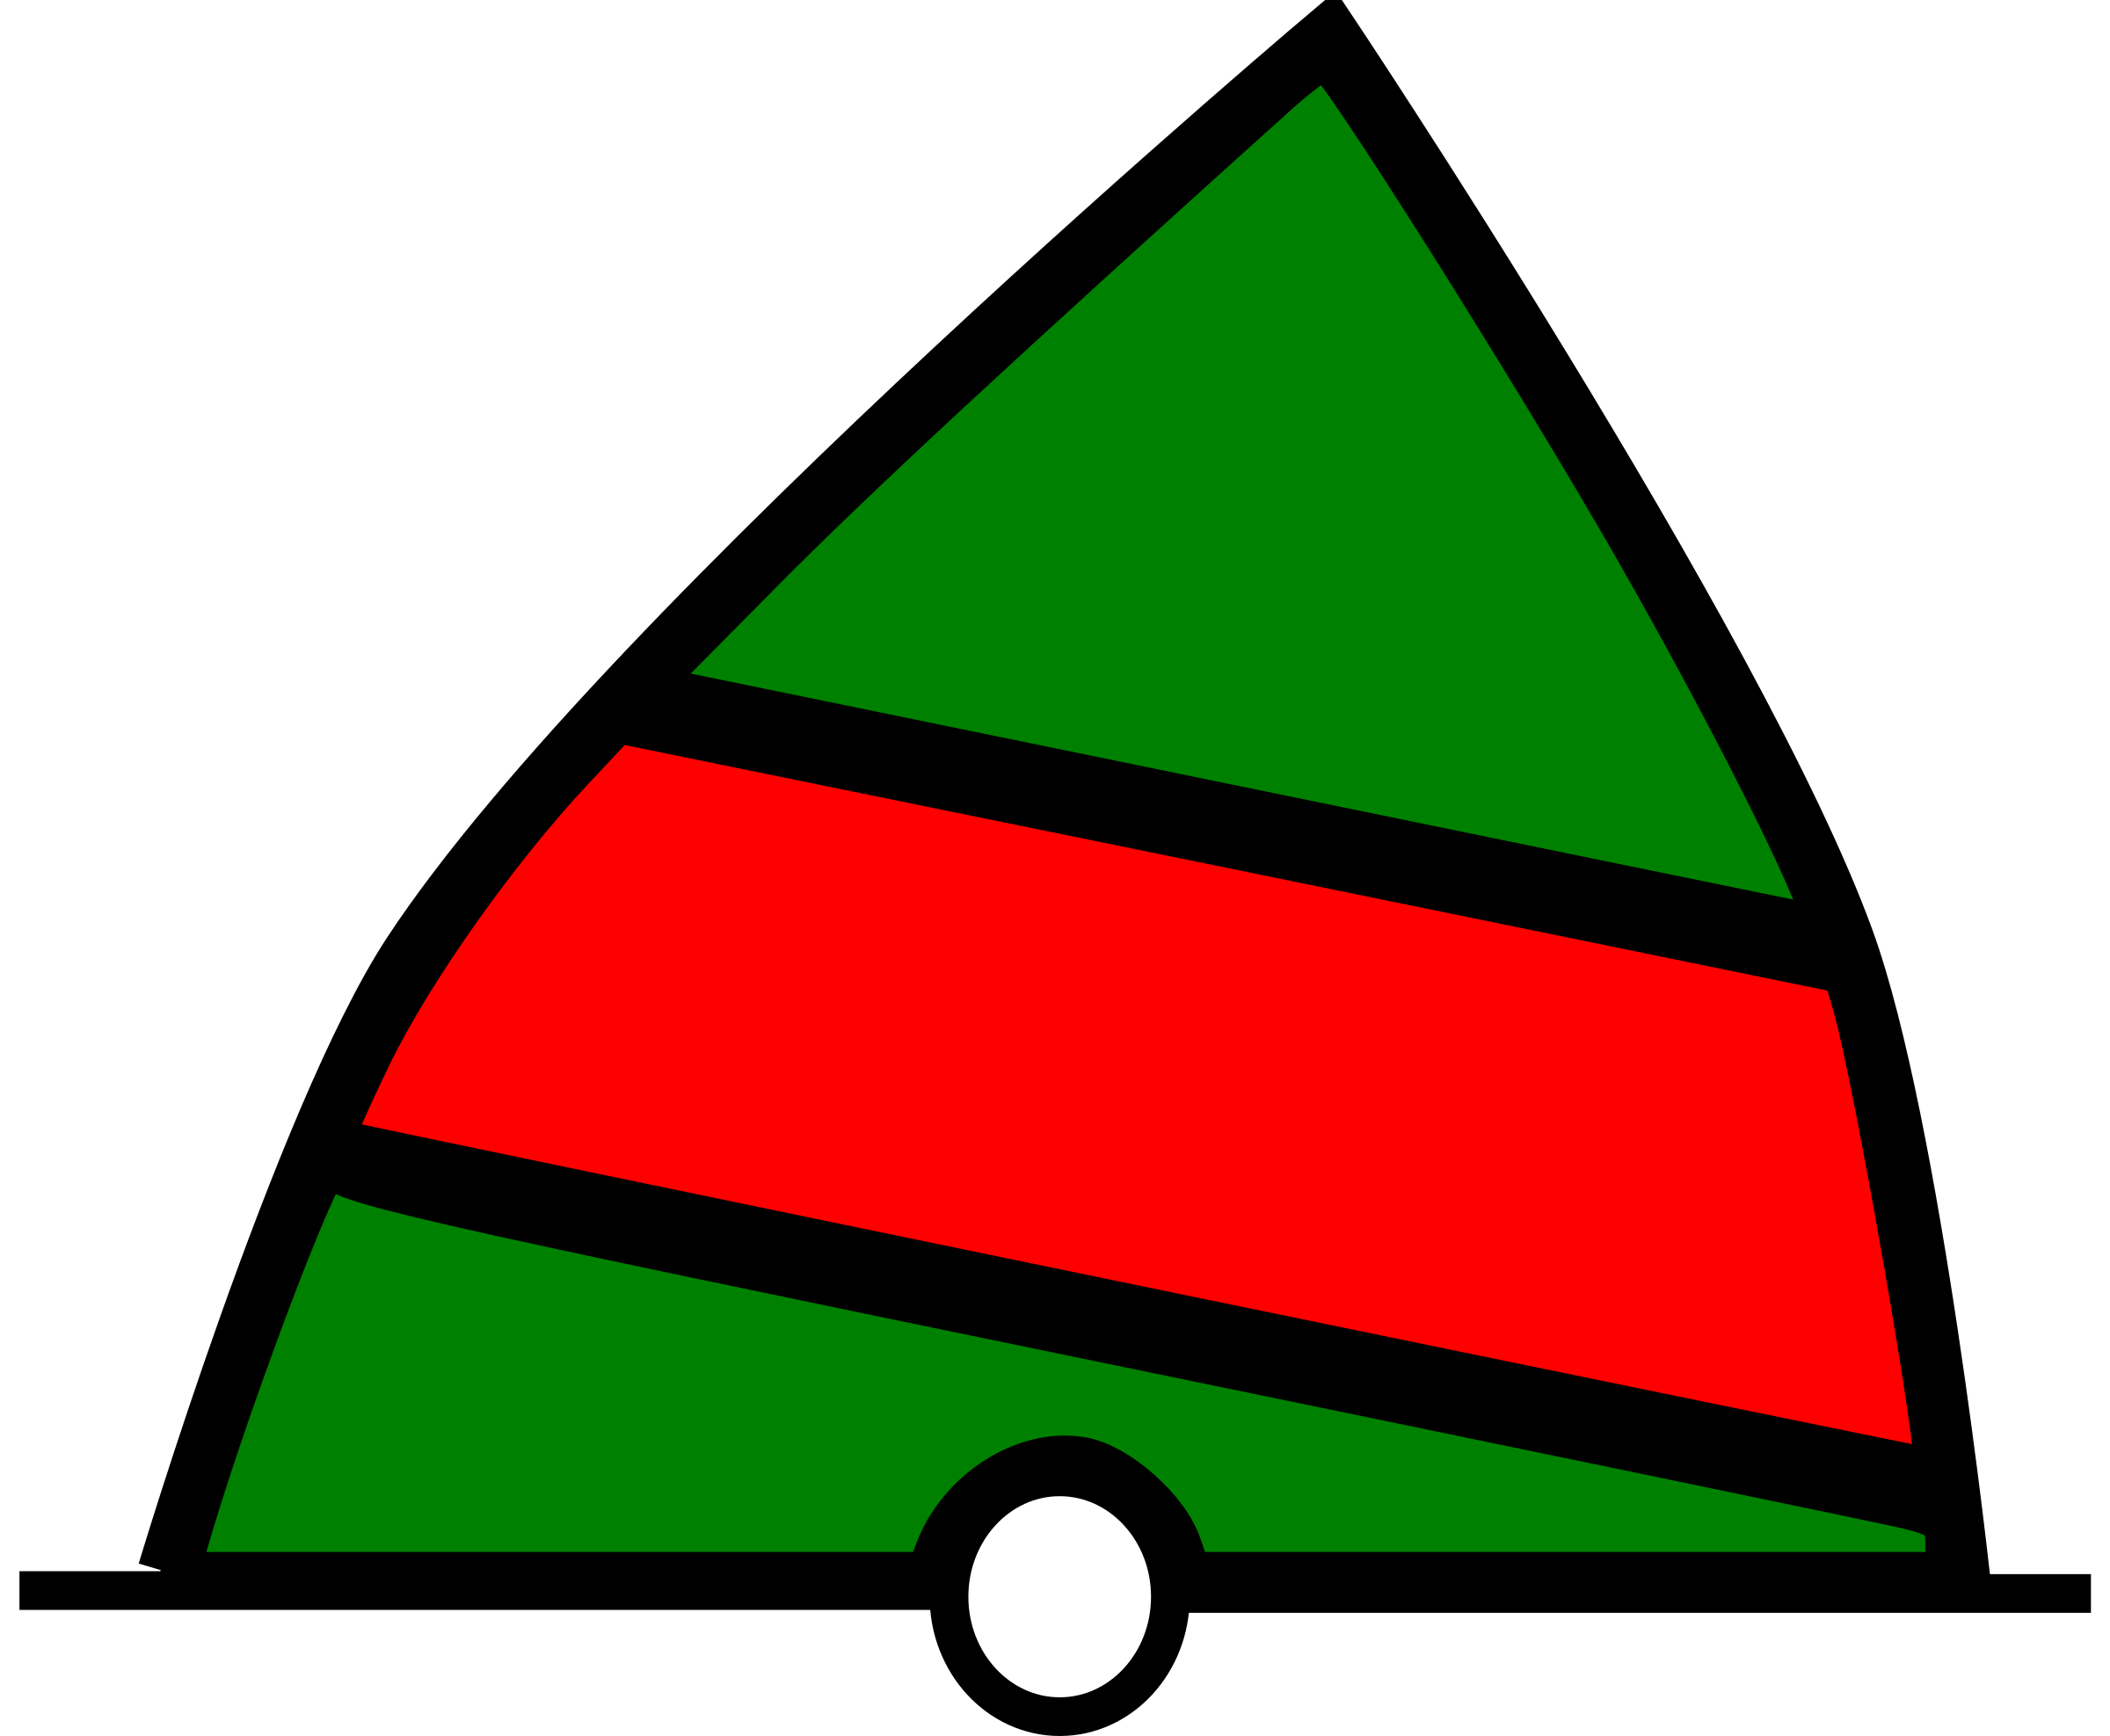 conical buoy green-red-green by seafish